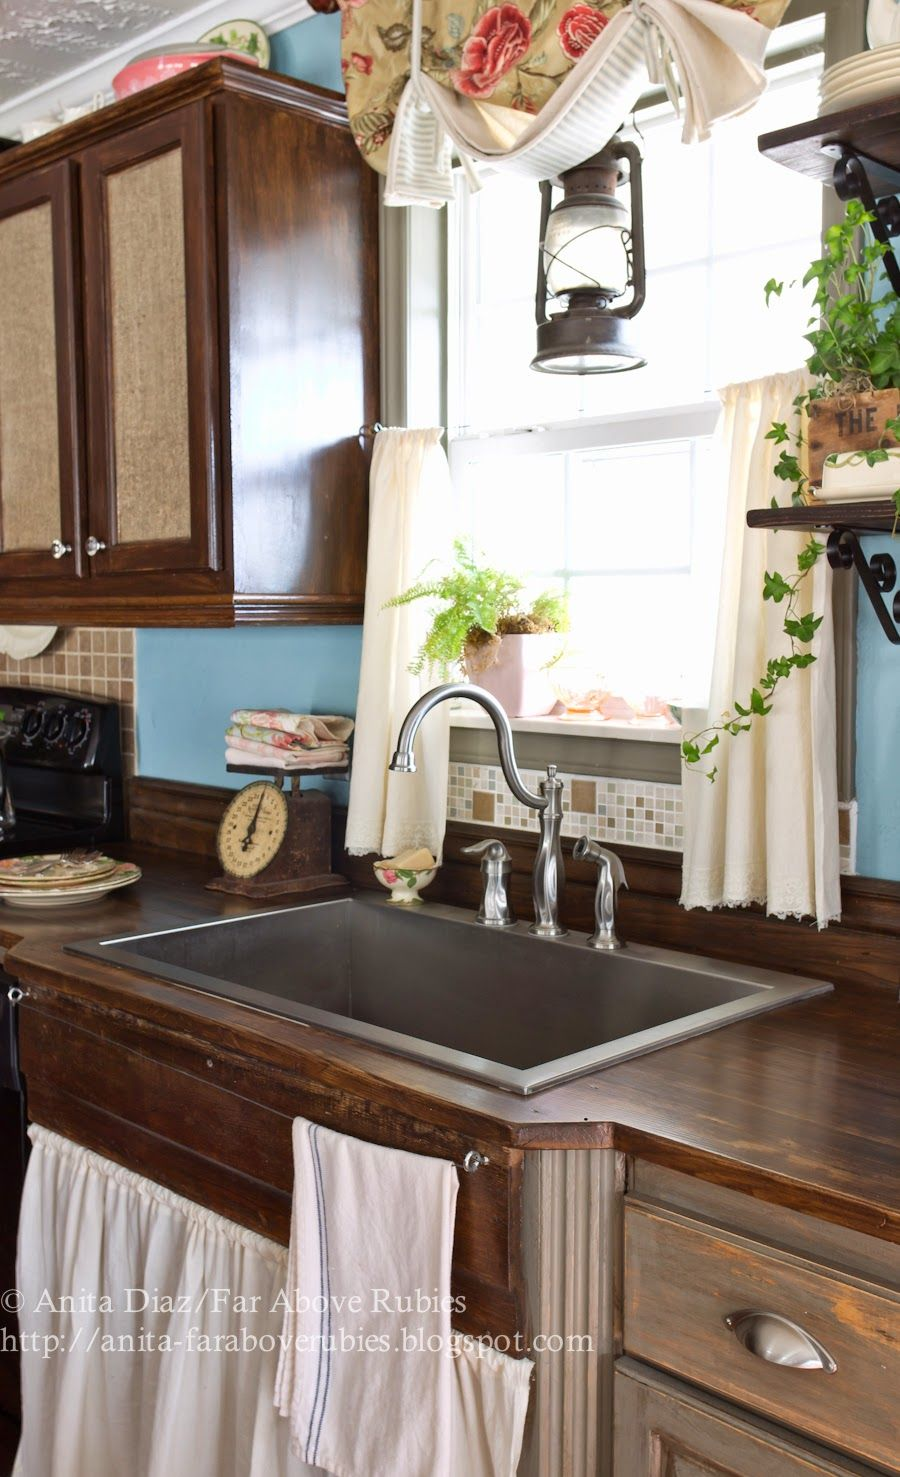 Far Above Rubies Muslin And Lace Sink Skirt And Cafe Curtains Country Kitchen Kitchen Design House Skirting